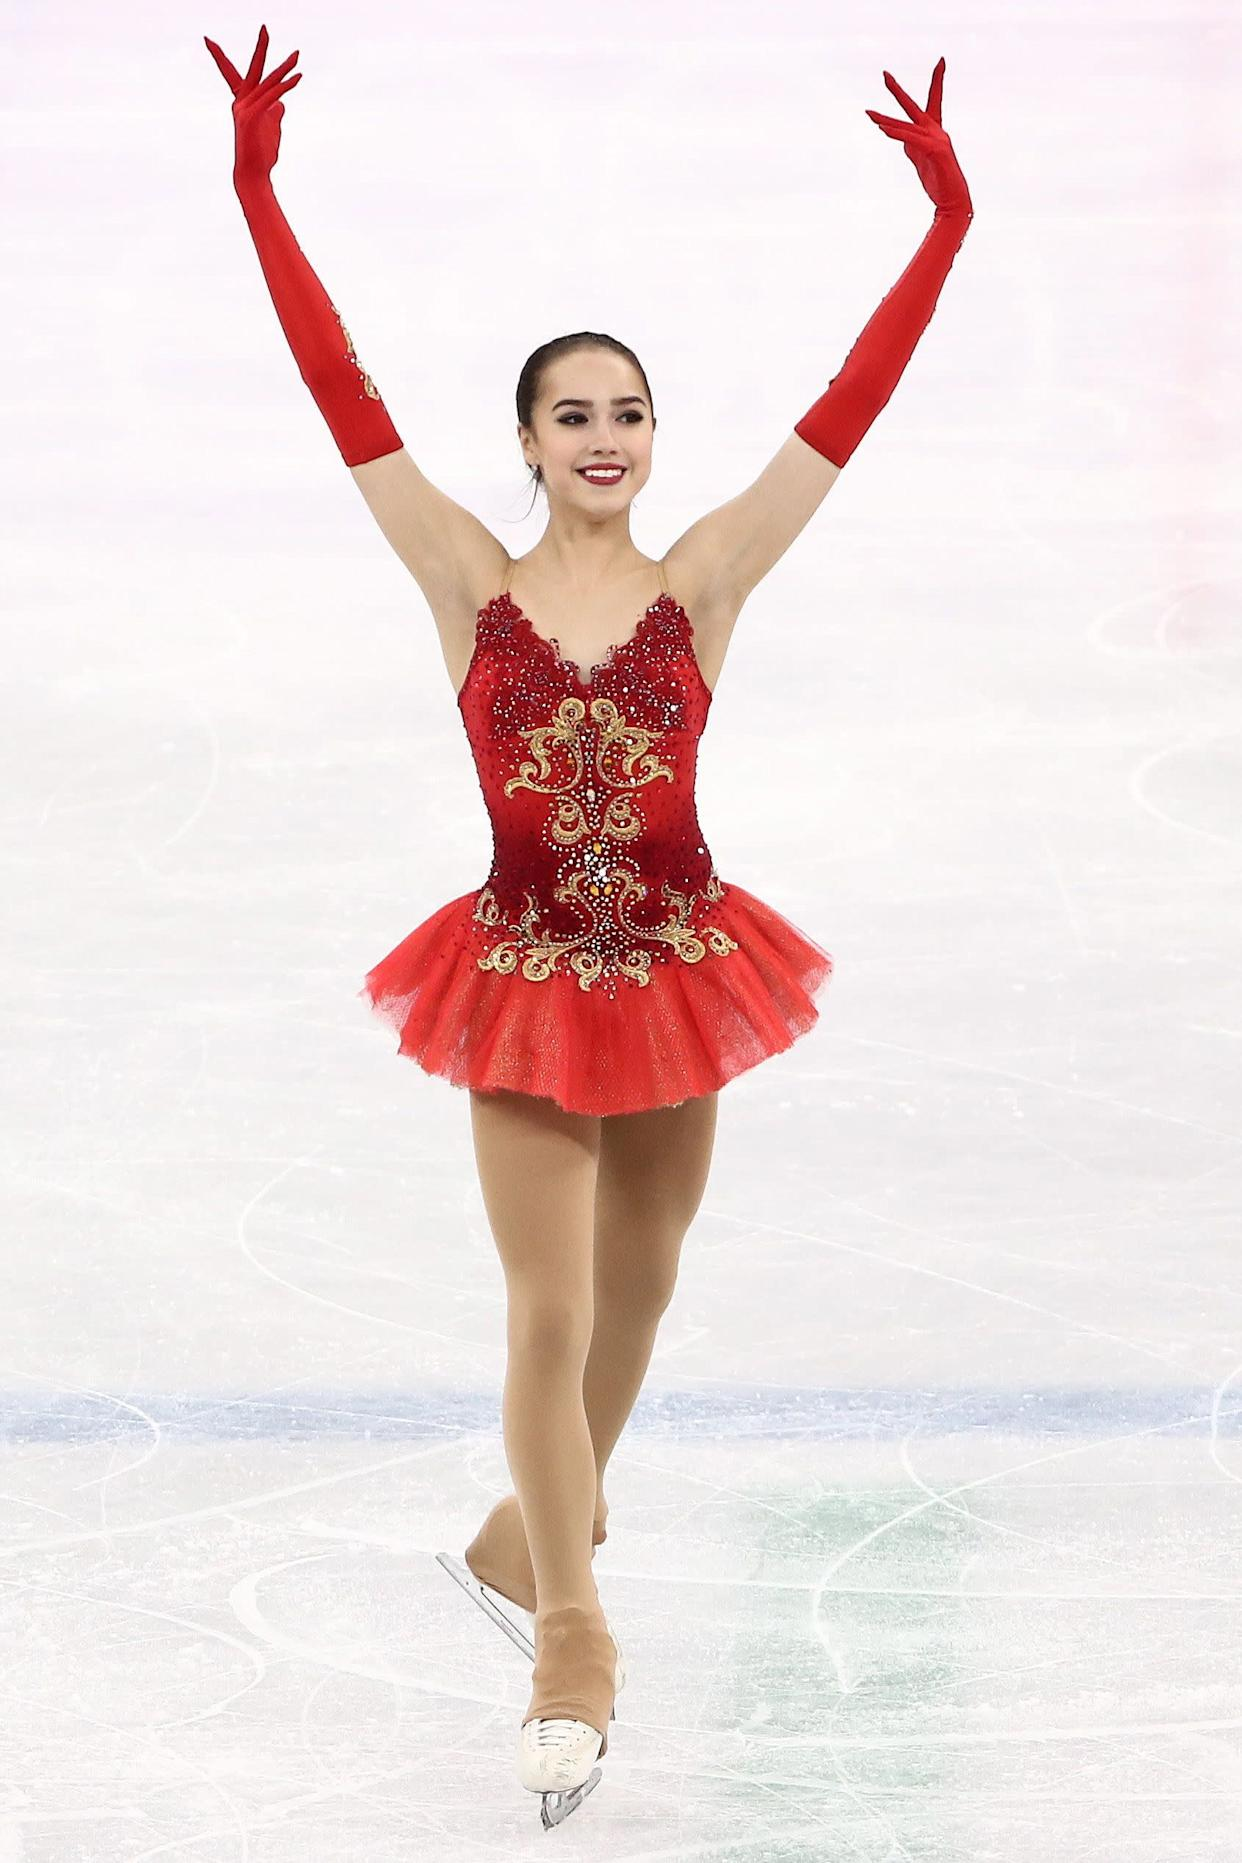 The Russian athlete took home the gold for ladies figure skating, and she definitely deserved it. Not only was her skating phenomenal, her ballet-inspired costumes (like this one,worn for her free skate) were stunning.